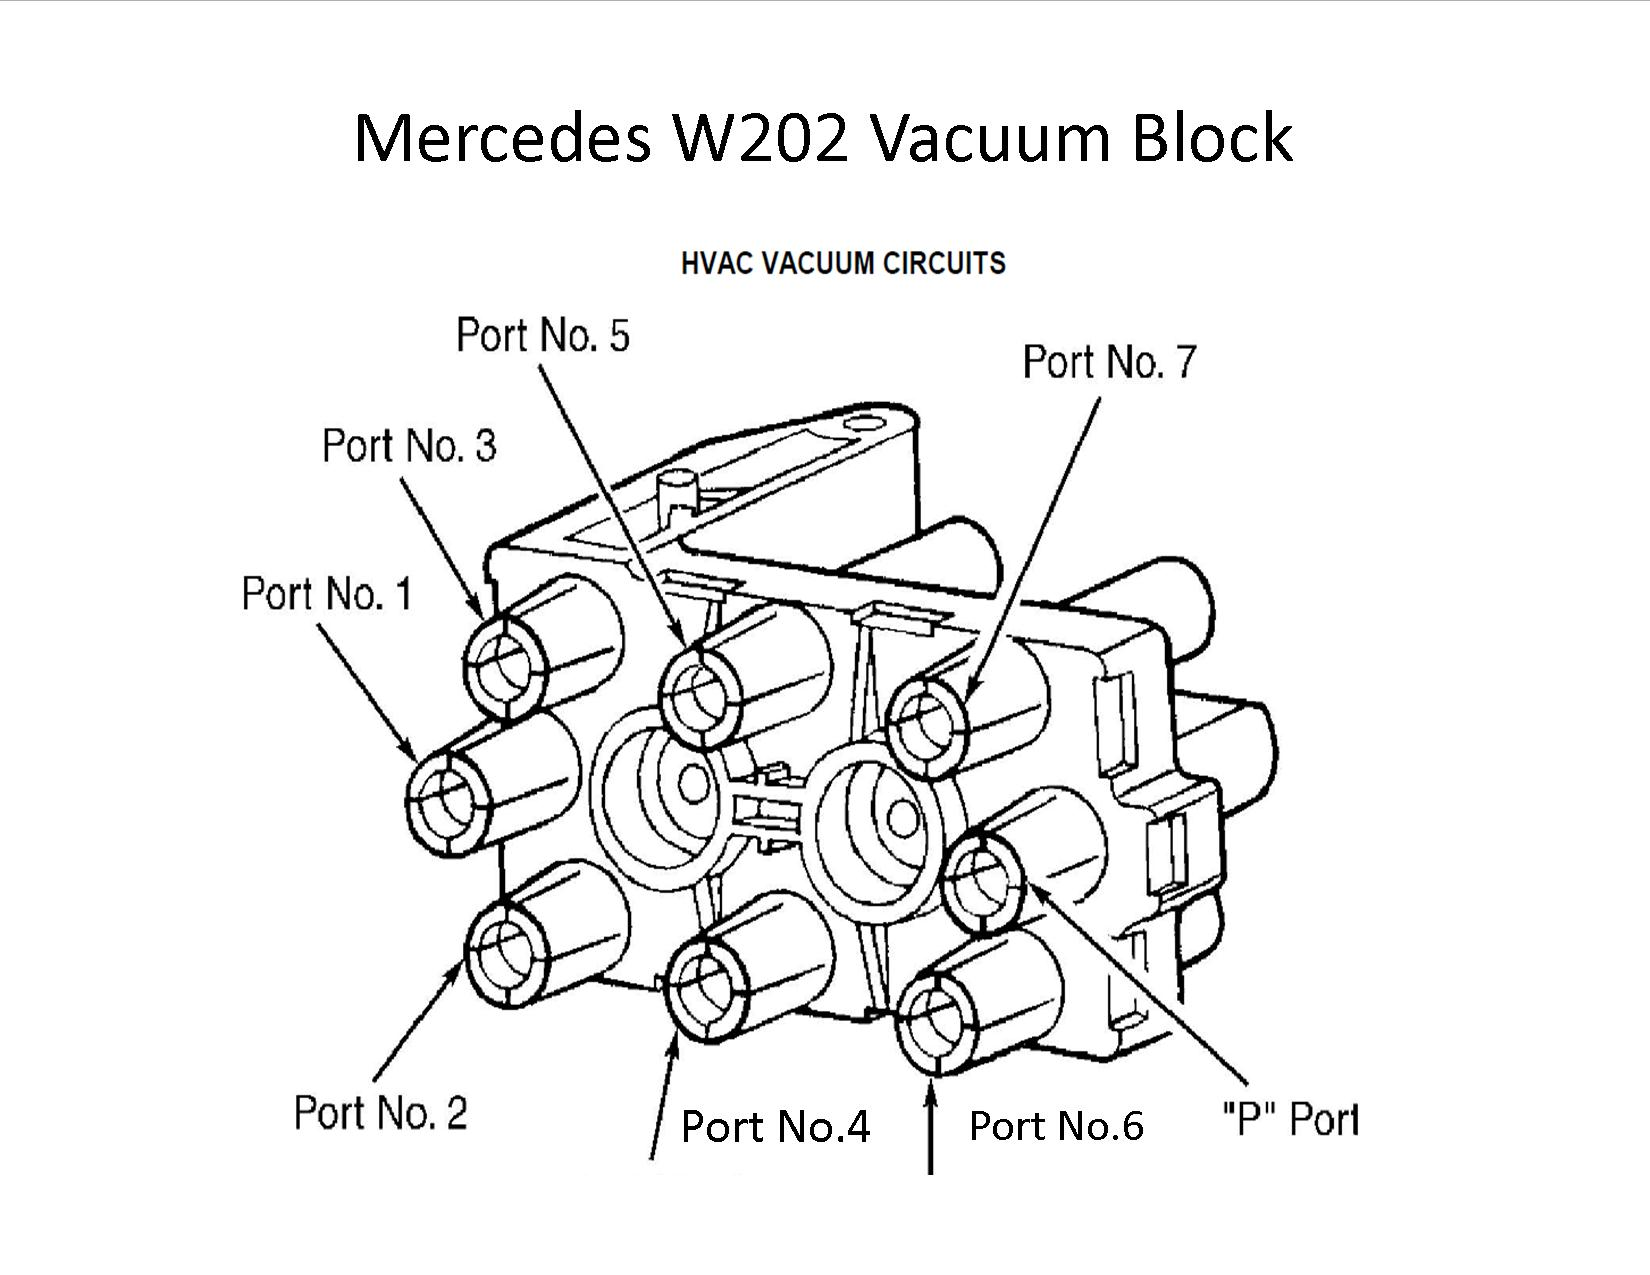 C220: I have a 1995 Mercedes C220 (W202) vacuum issues